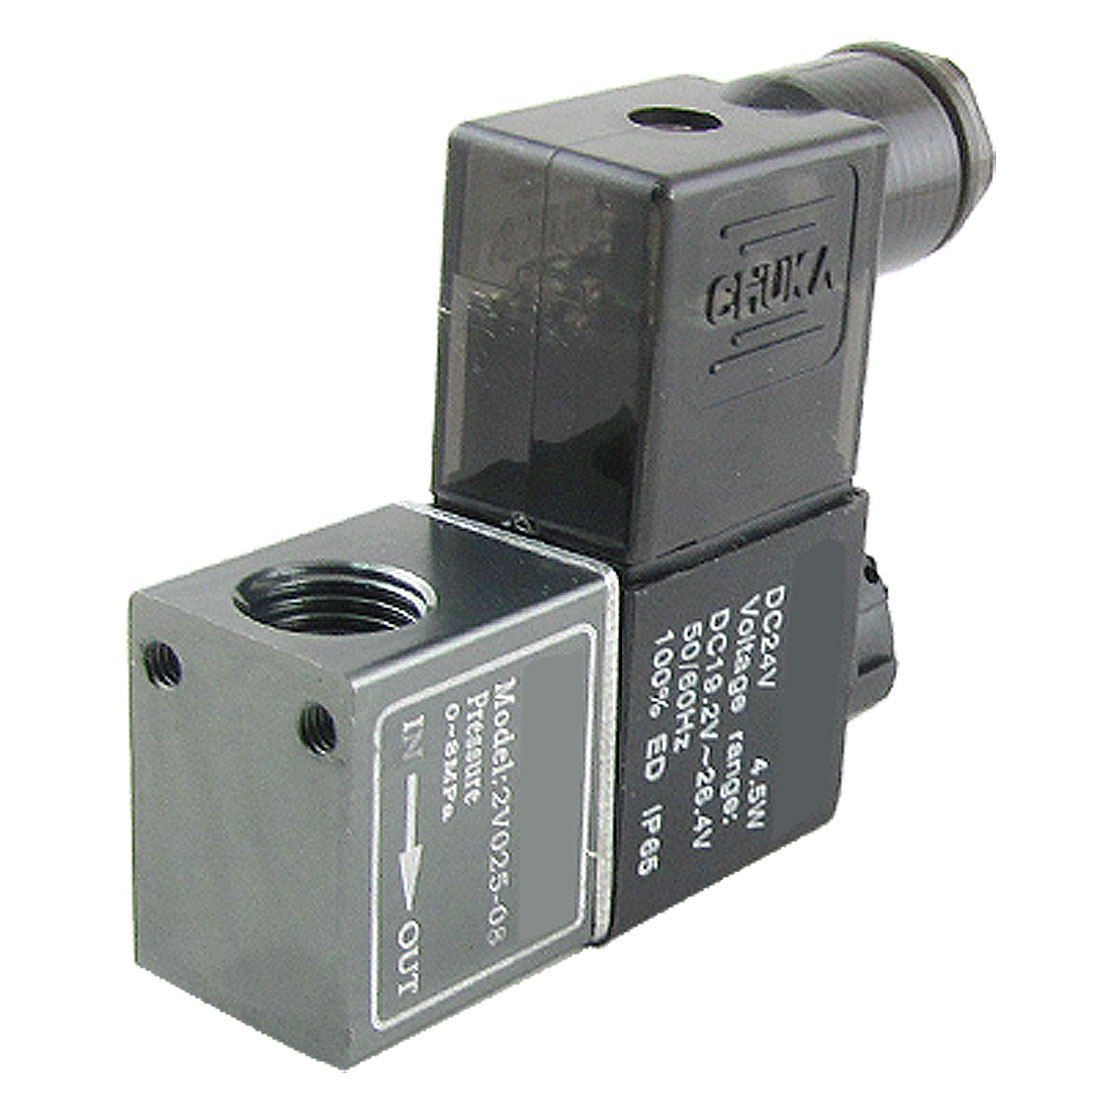 2C025-08 DC 24V 2 Position 2 Way Pneumatic Air Solenoid Valve